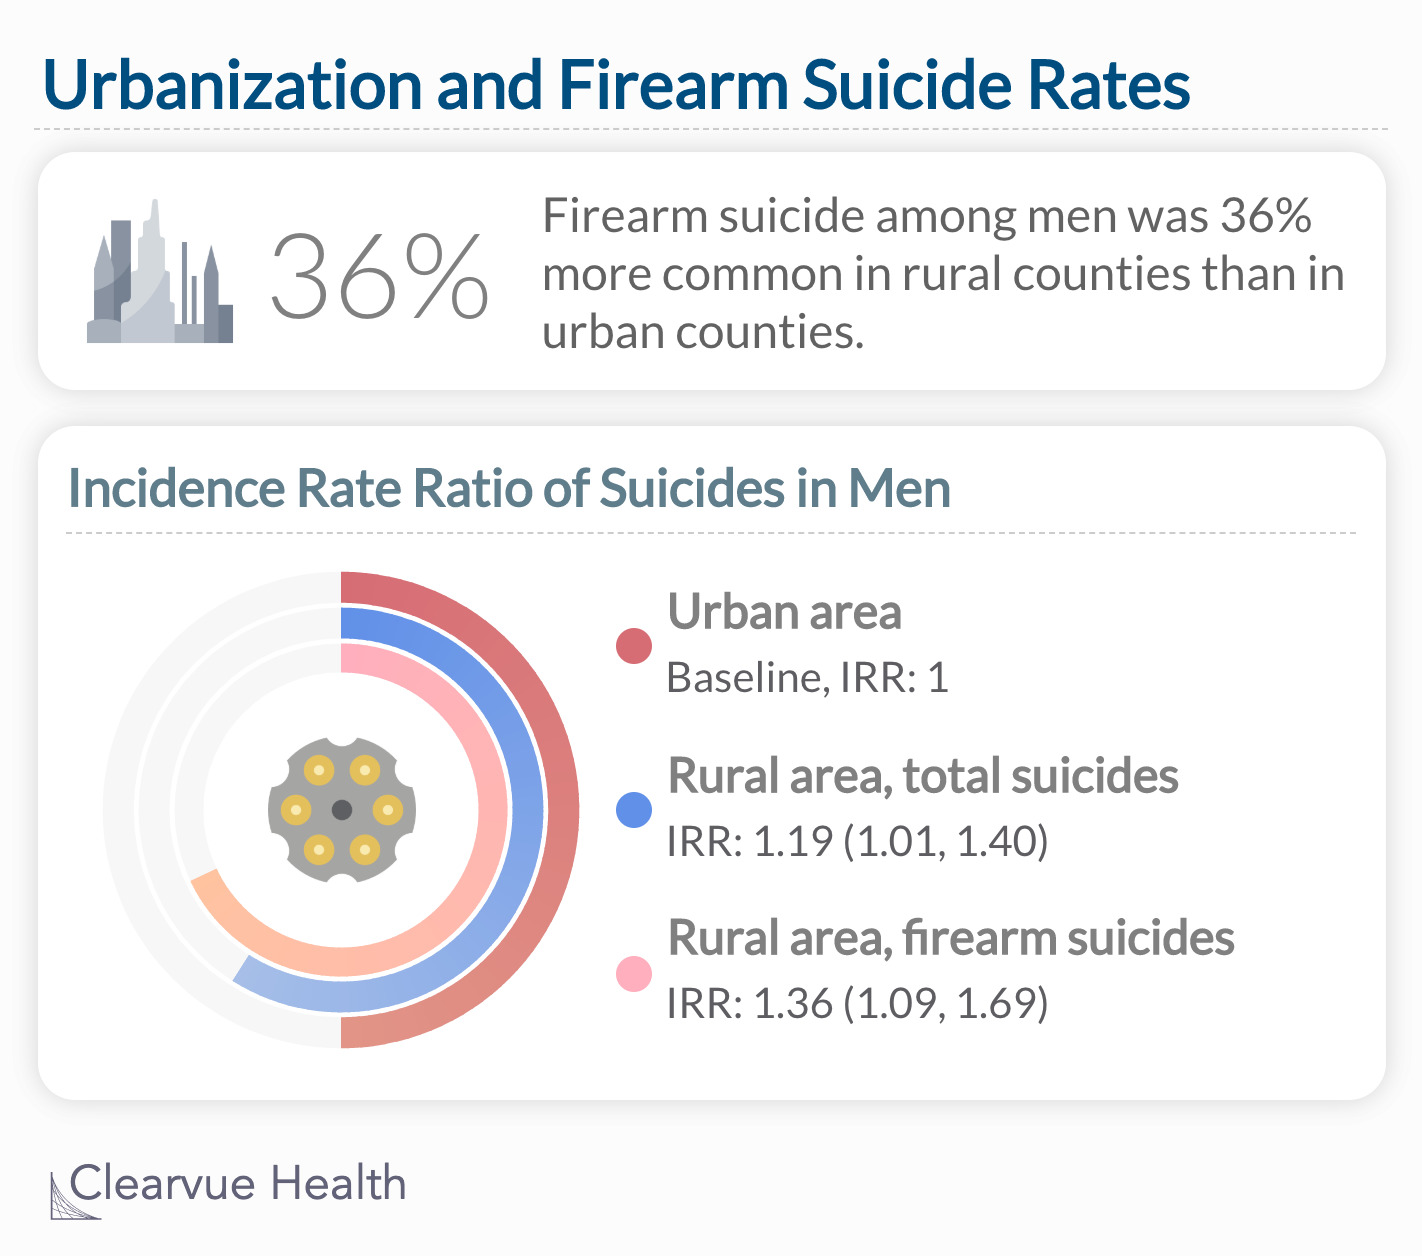 Firearm suicide among men was 36% more common in rural counties than in urban counties.